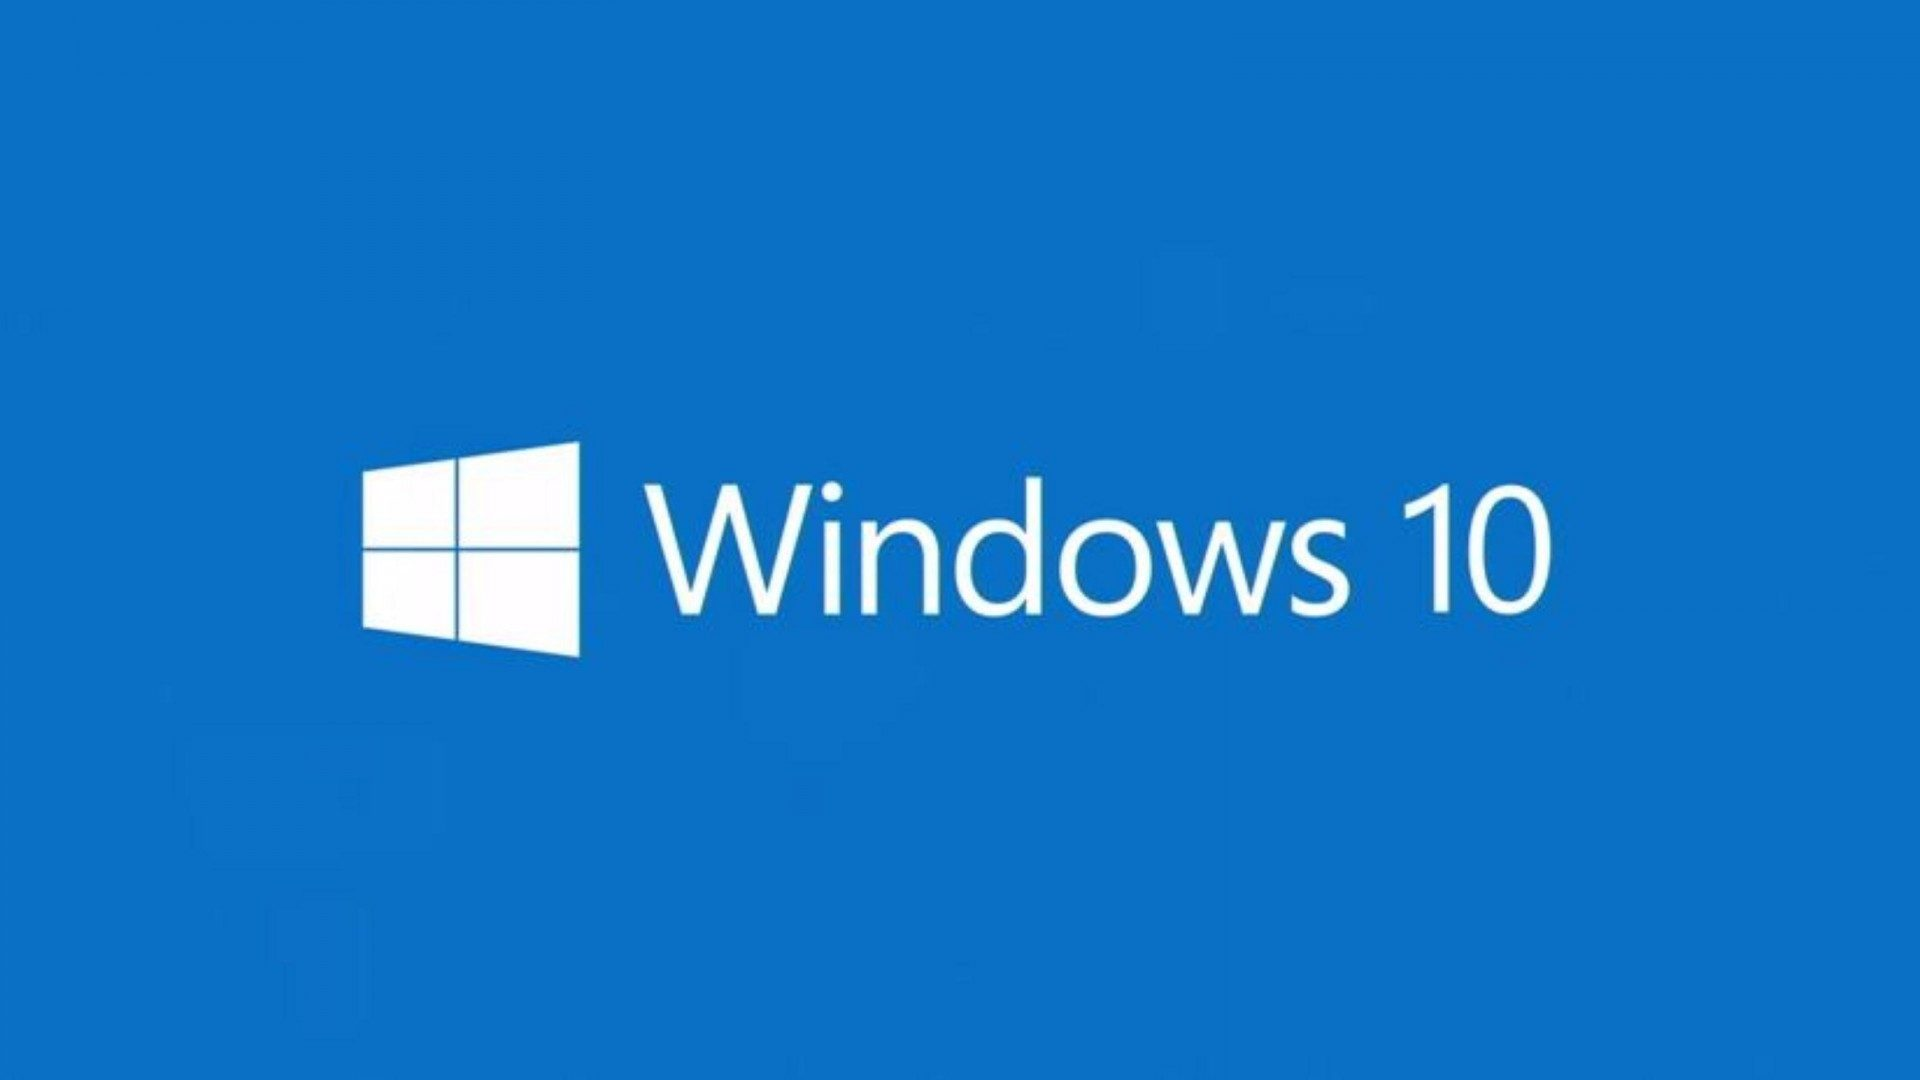 Windows 10 and What I hope it Means